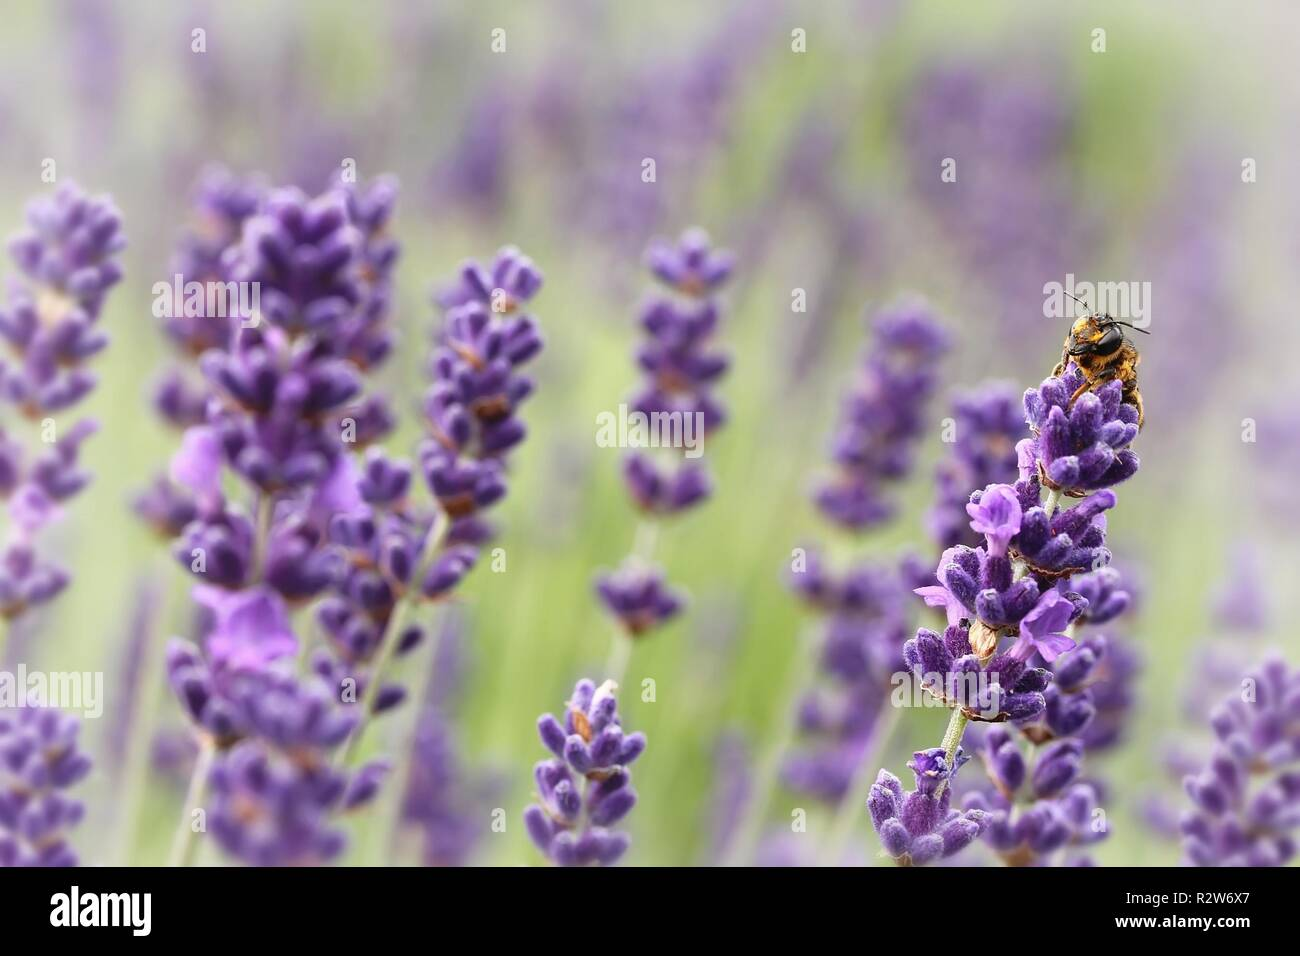 bee on lavender flowers - Stock Image